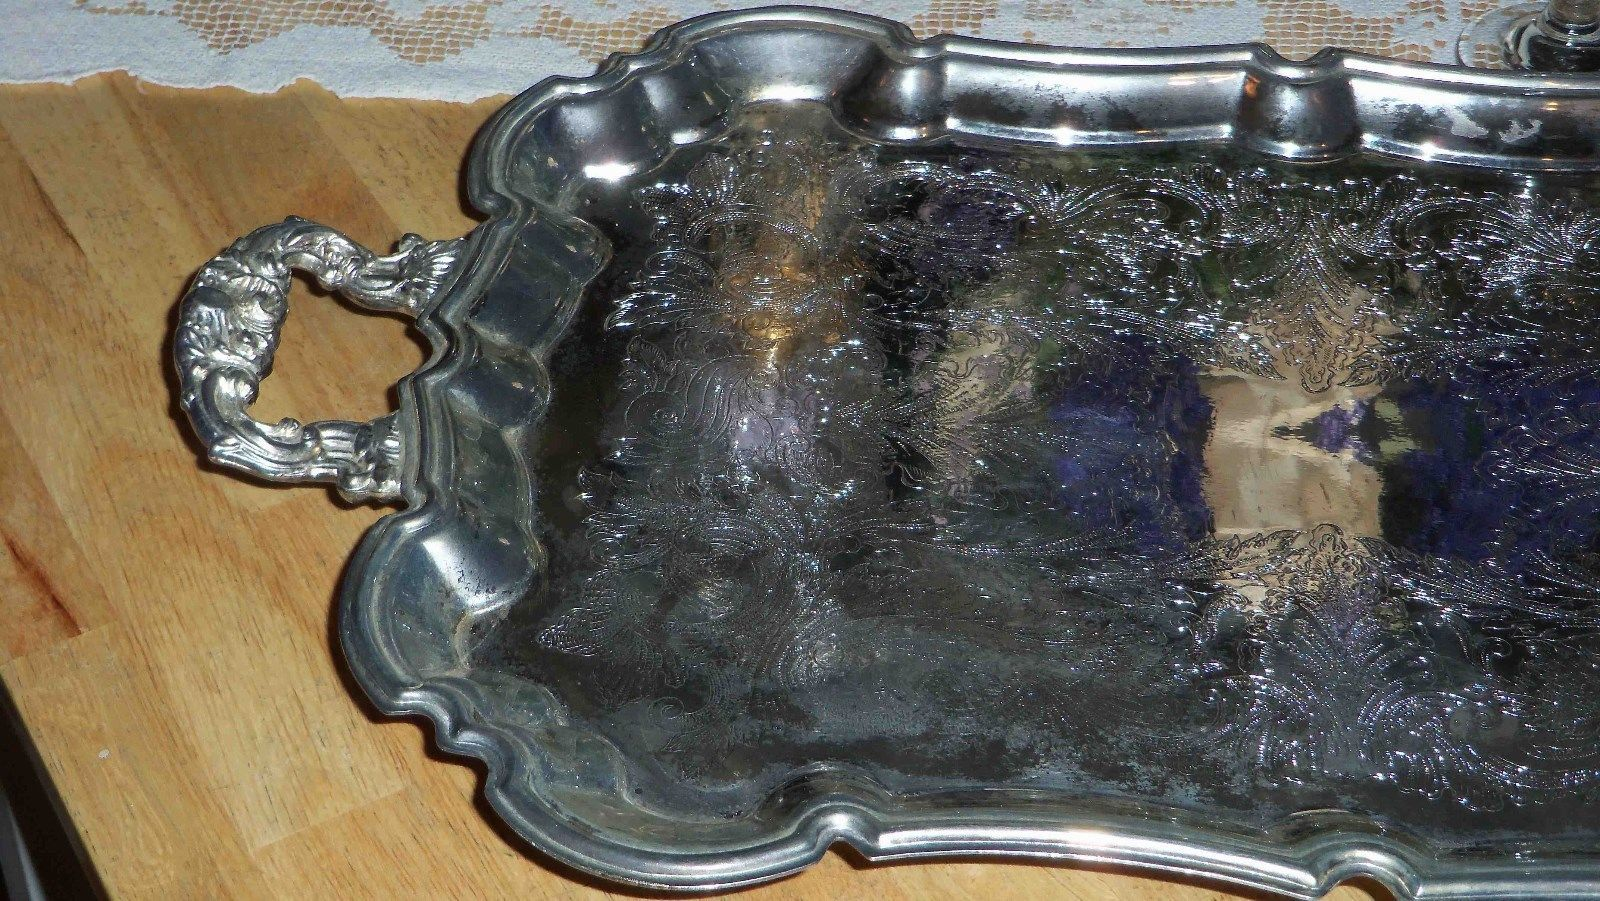 International Silver Co Footed Scalloped Edge Ornate Engraved Silver Plate Tray